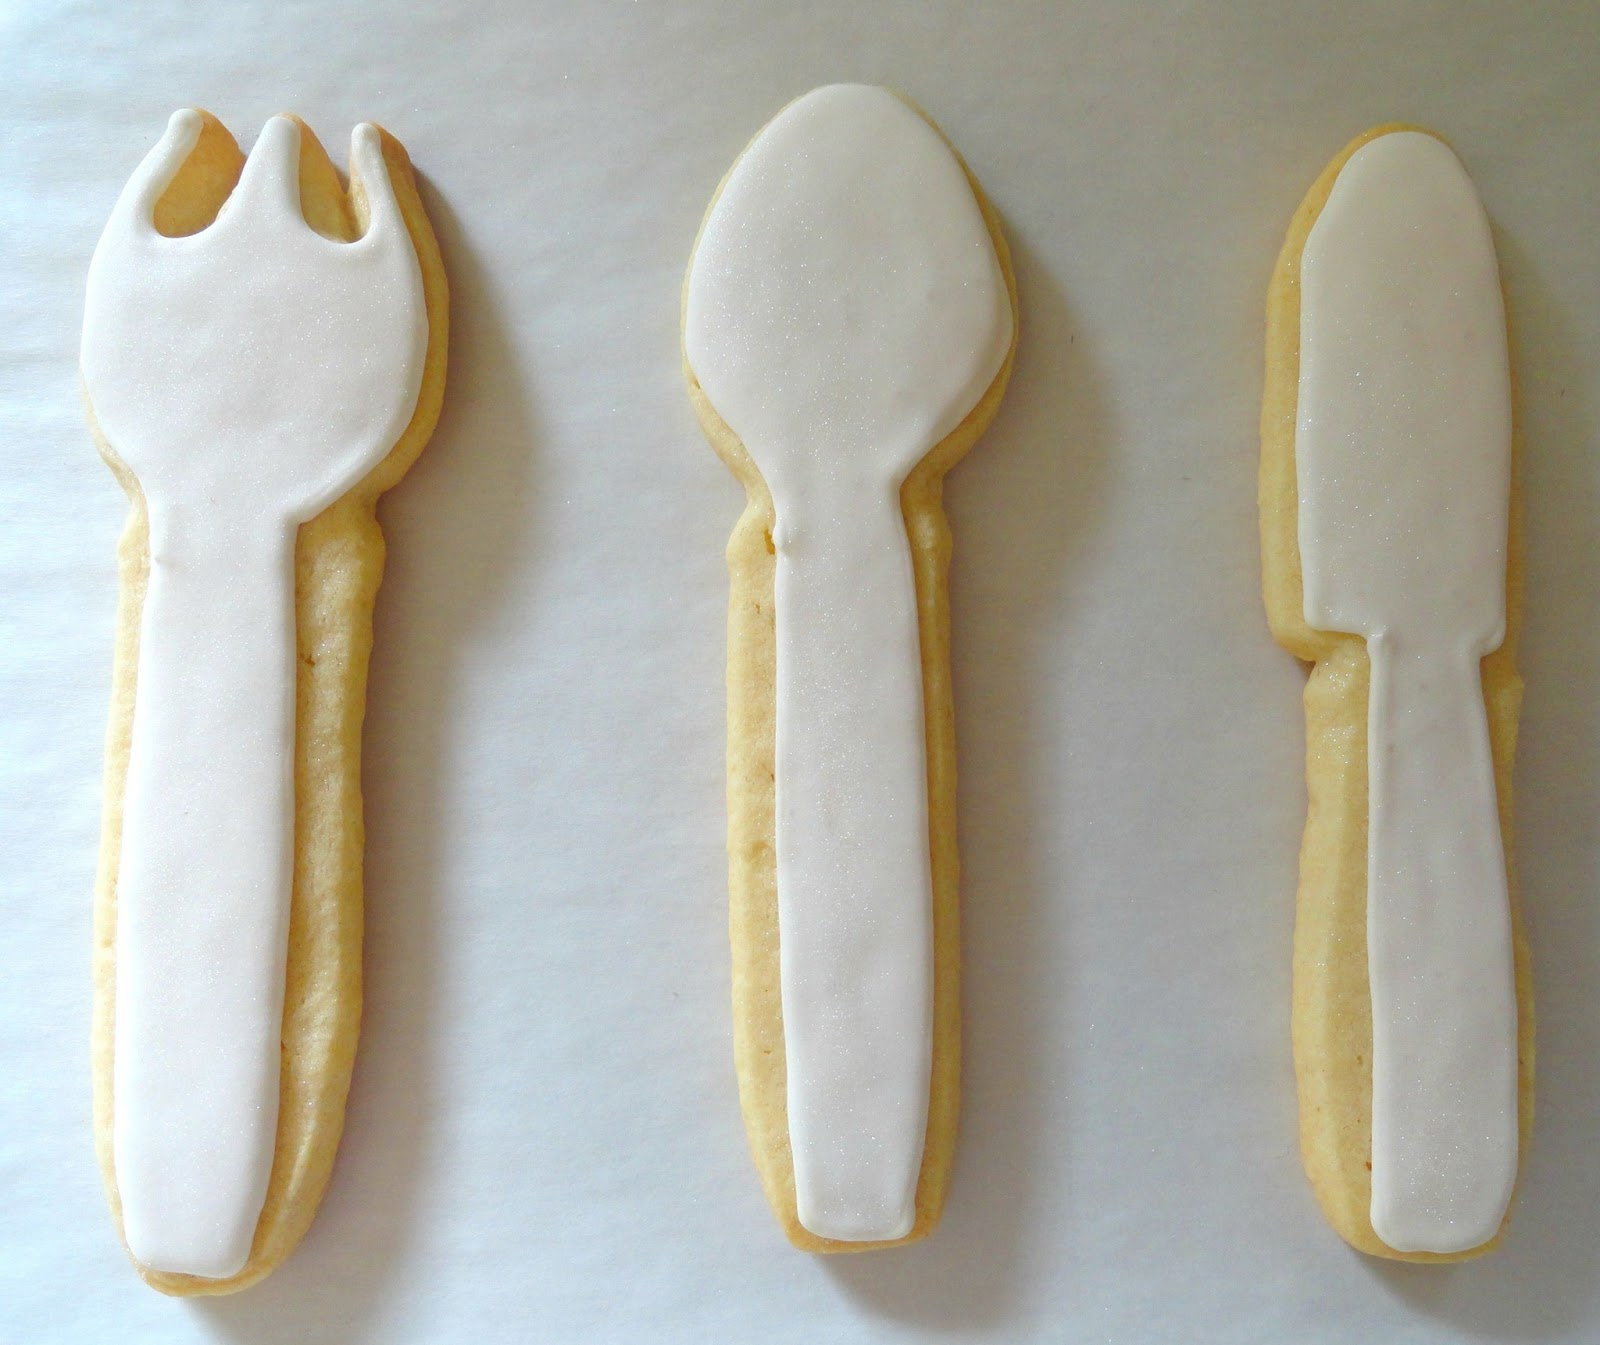 Pink Little Cake: Serving Fork, Spoon and Knife Set- Decorated Cookies